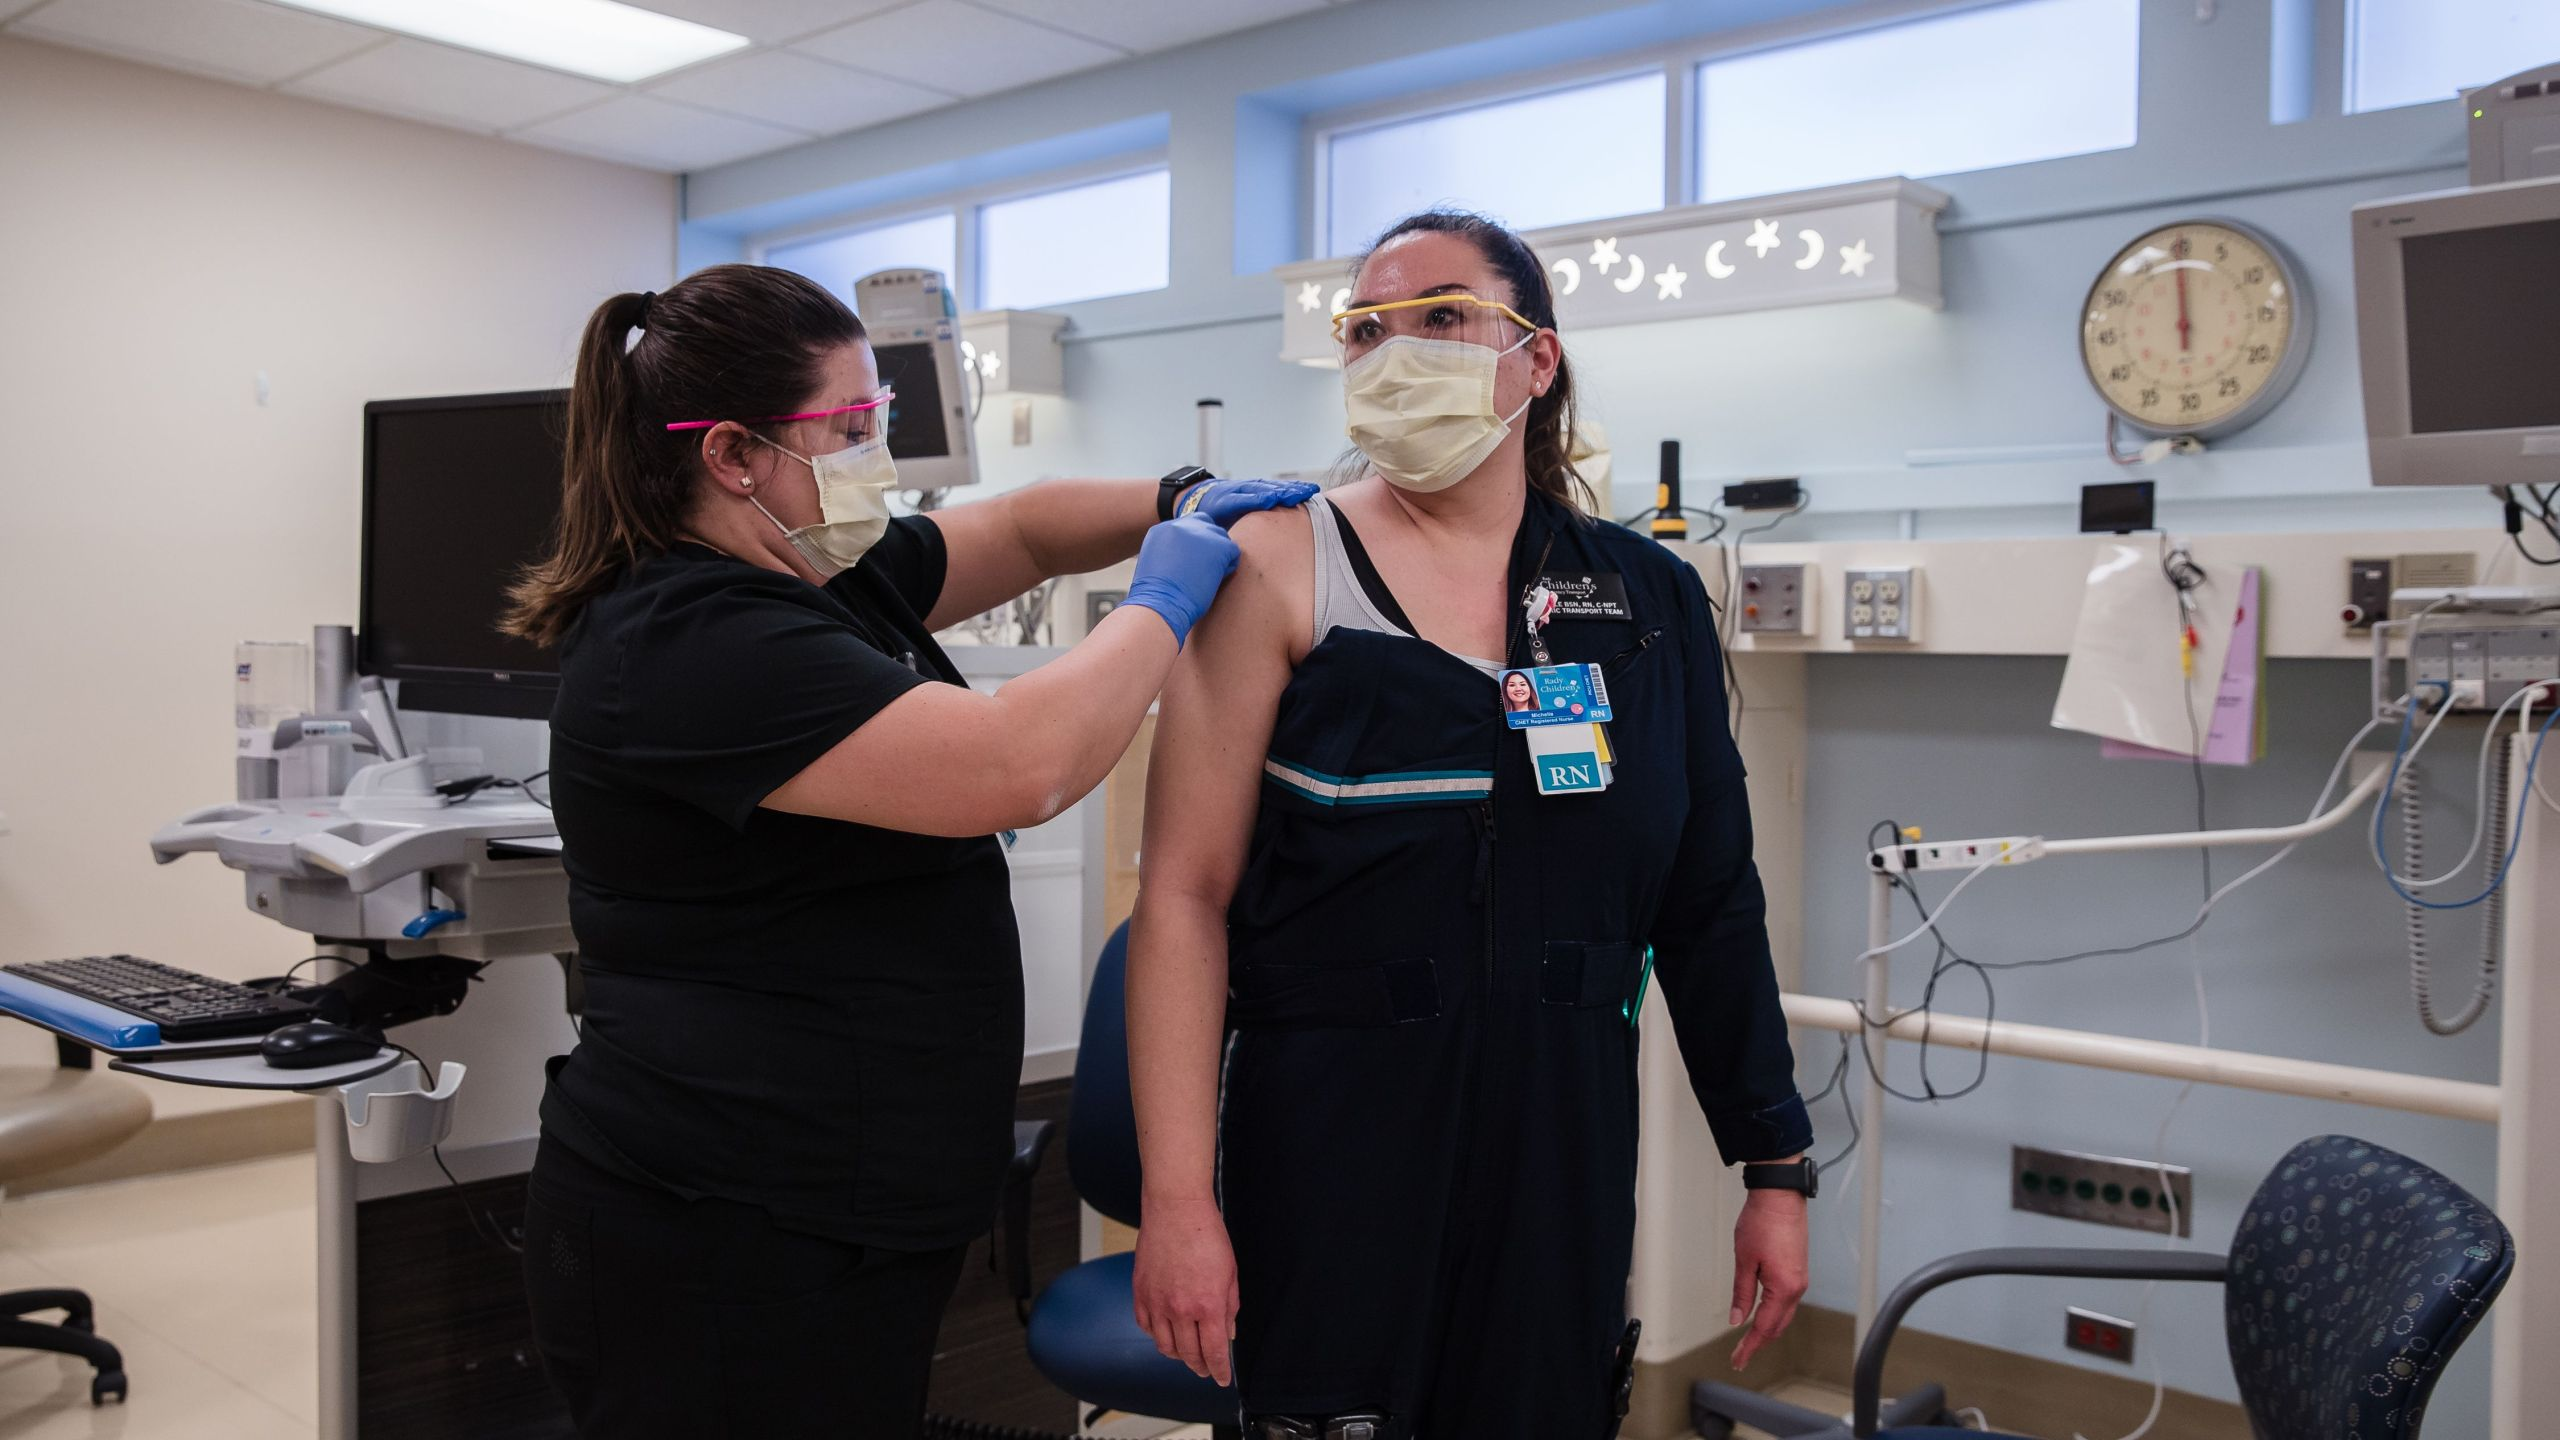 Rachel Marrs (L) gives the Pfizer-BioNTech Covid-19 Vaccine shot to Michelle Gaano a Registered Nurse at Rady Children's Hospital in San Diego, California on December 15, 2020. (ARIANA DREHSLER / AFP via Getty Images)